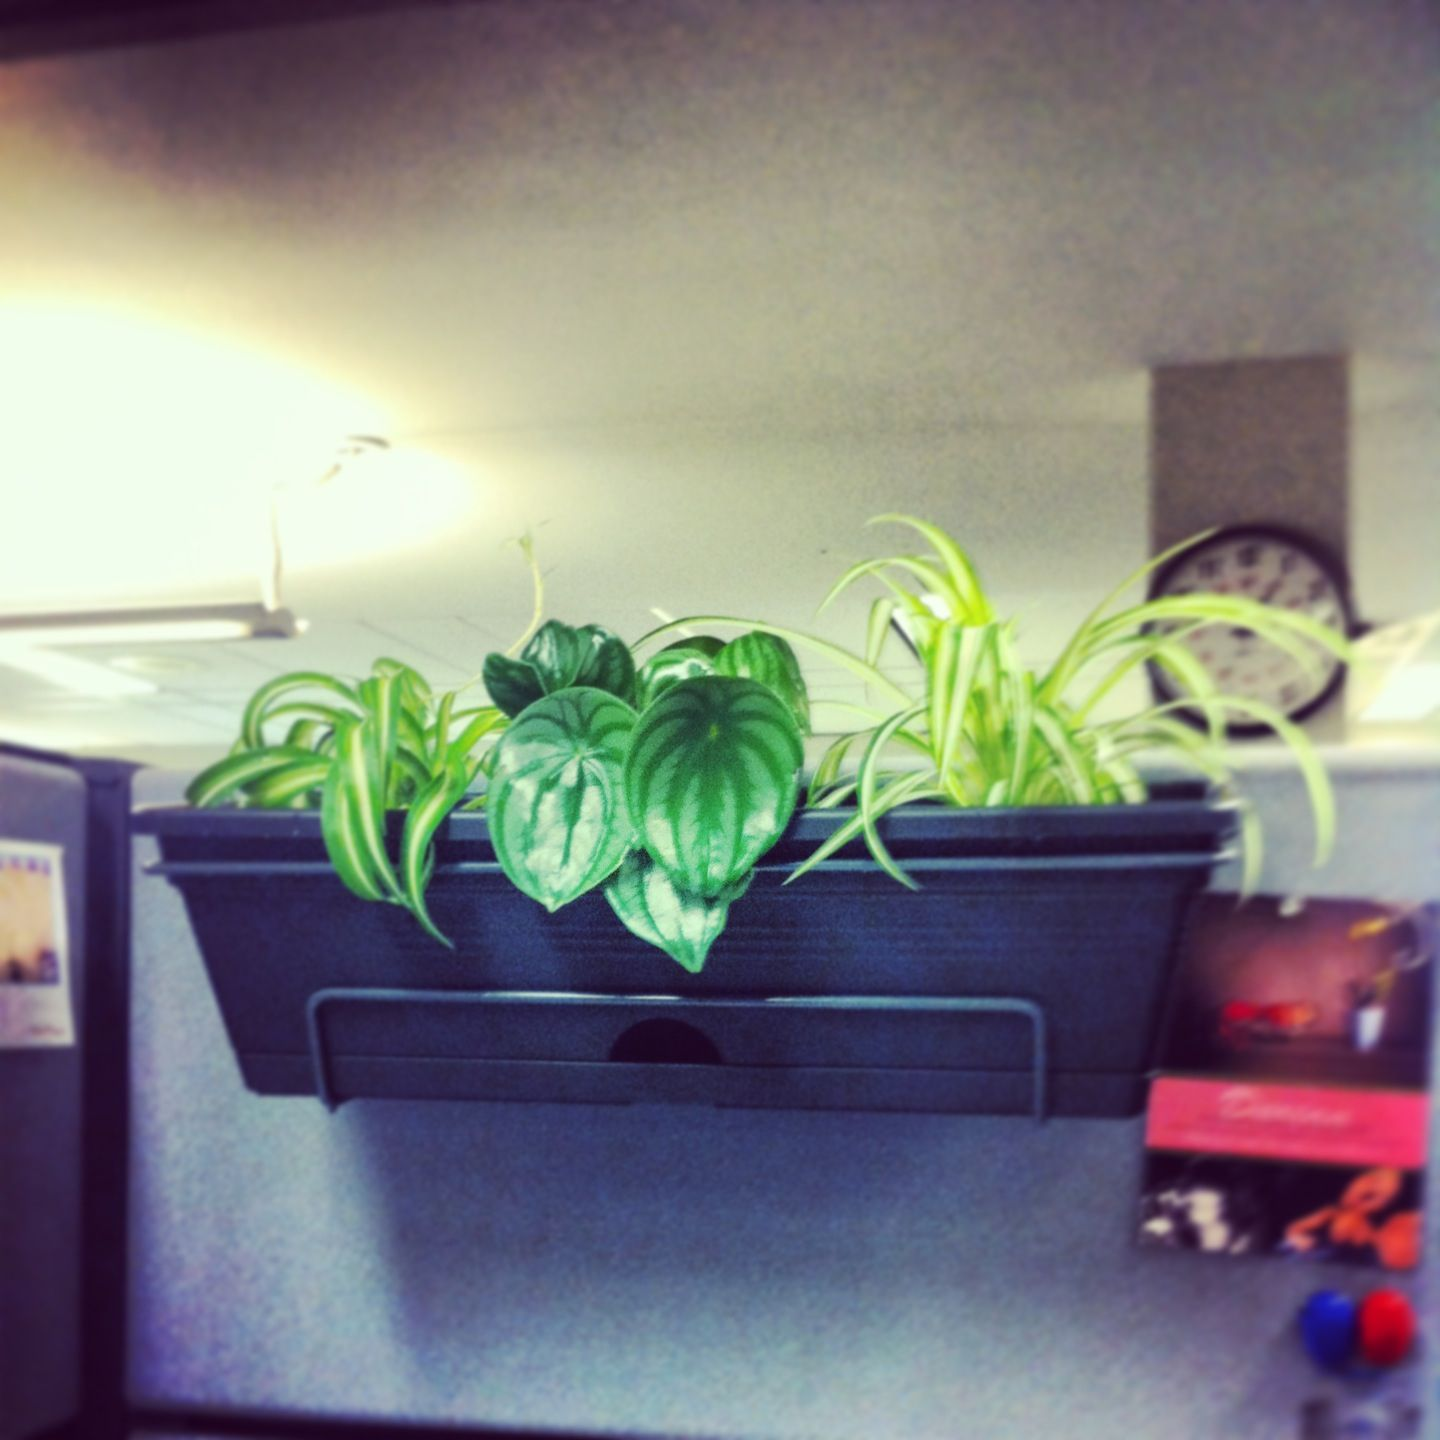 Cubicle Wall Planter Balcony Planters Also Work On Cubicle Walls Office Cubicle